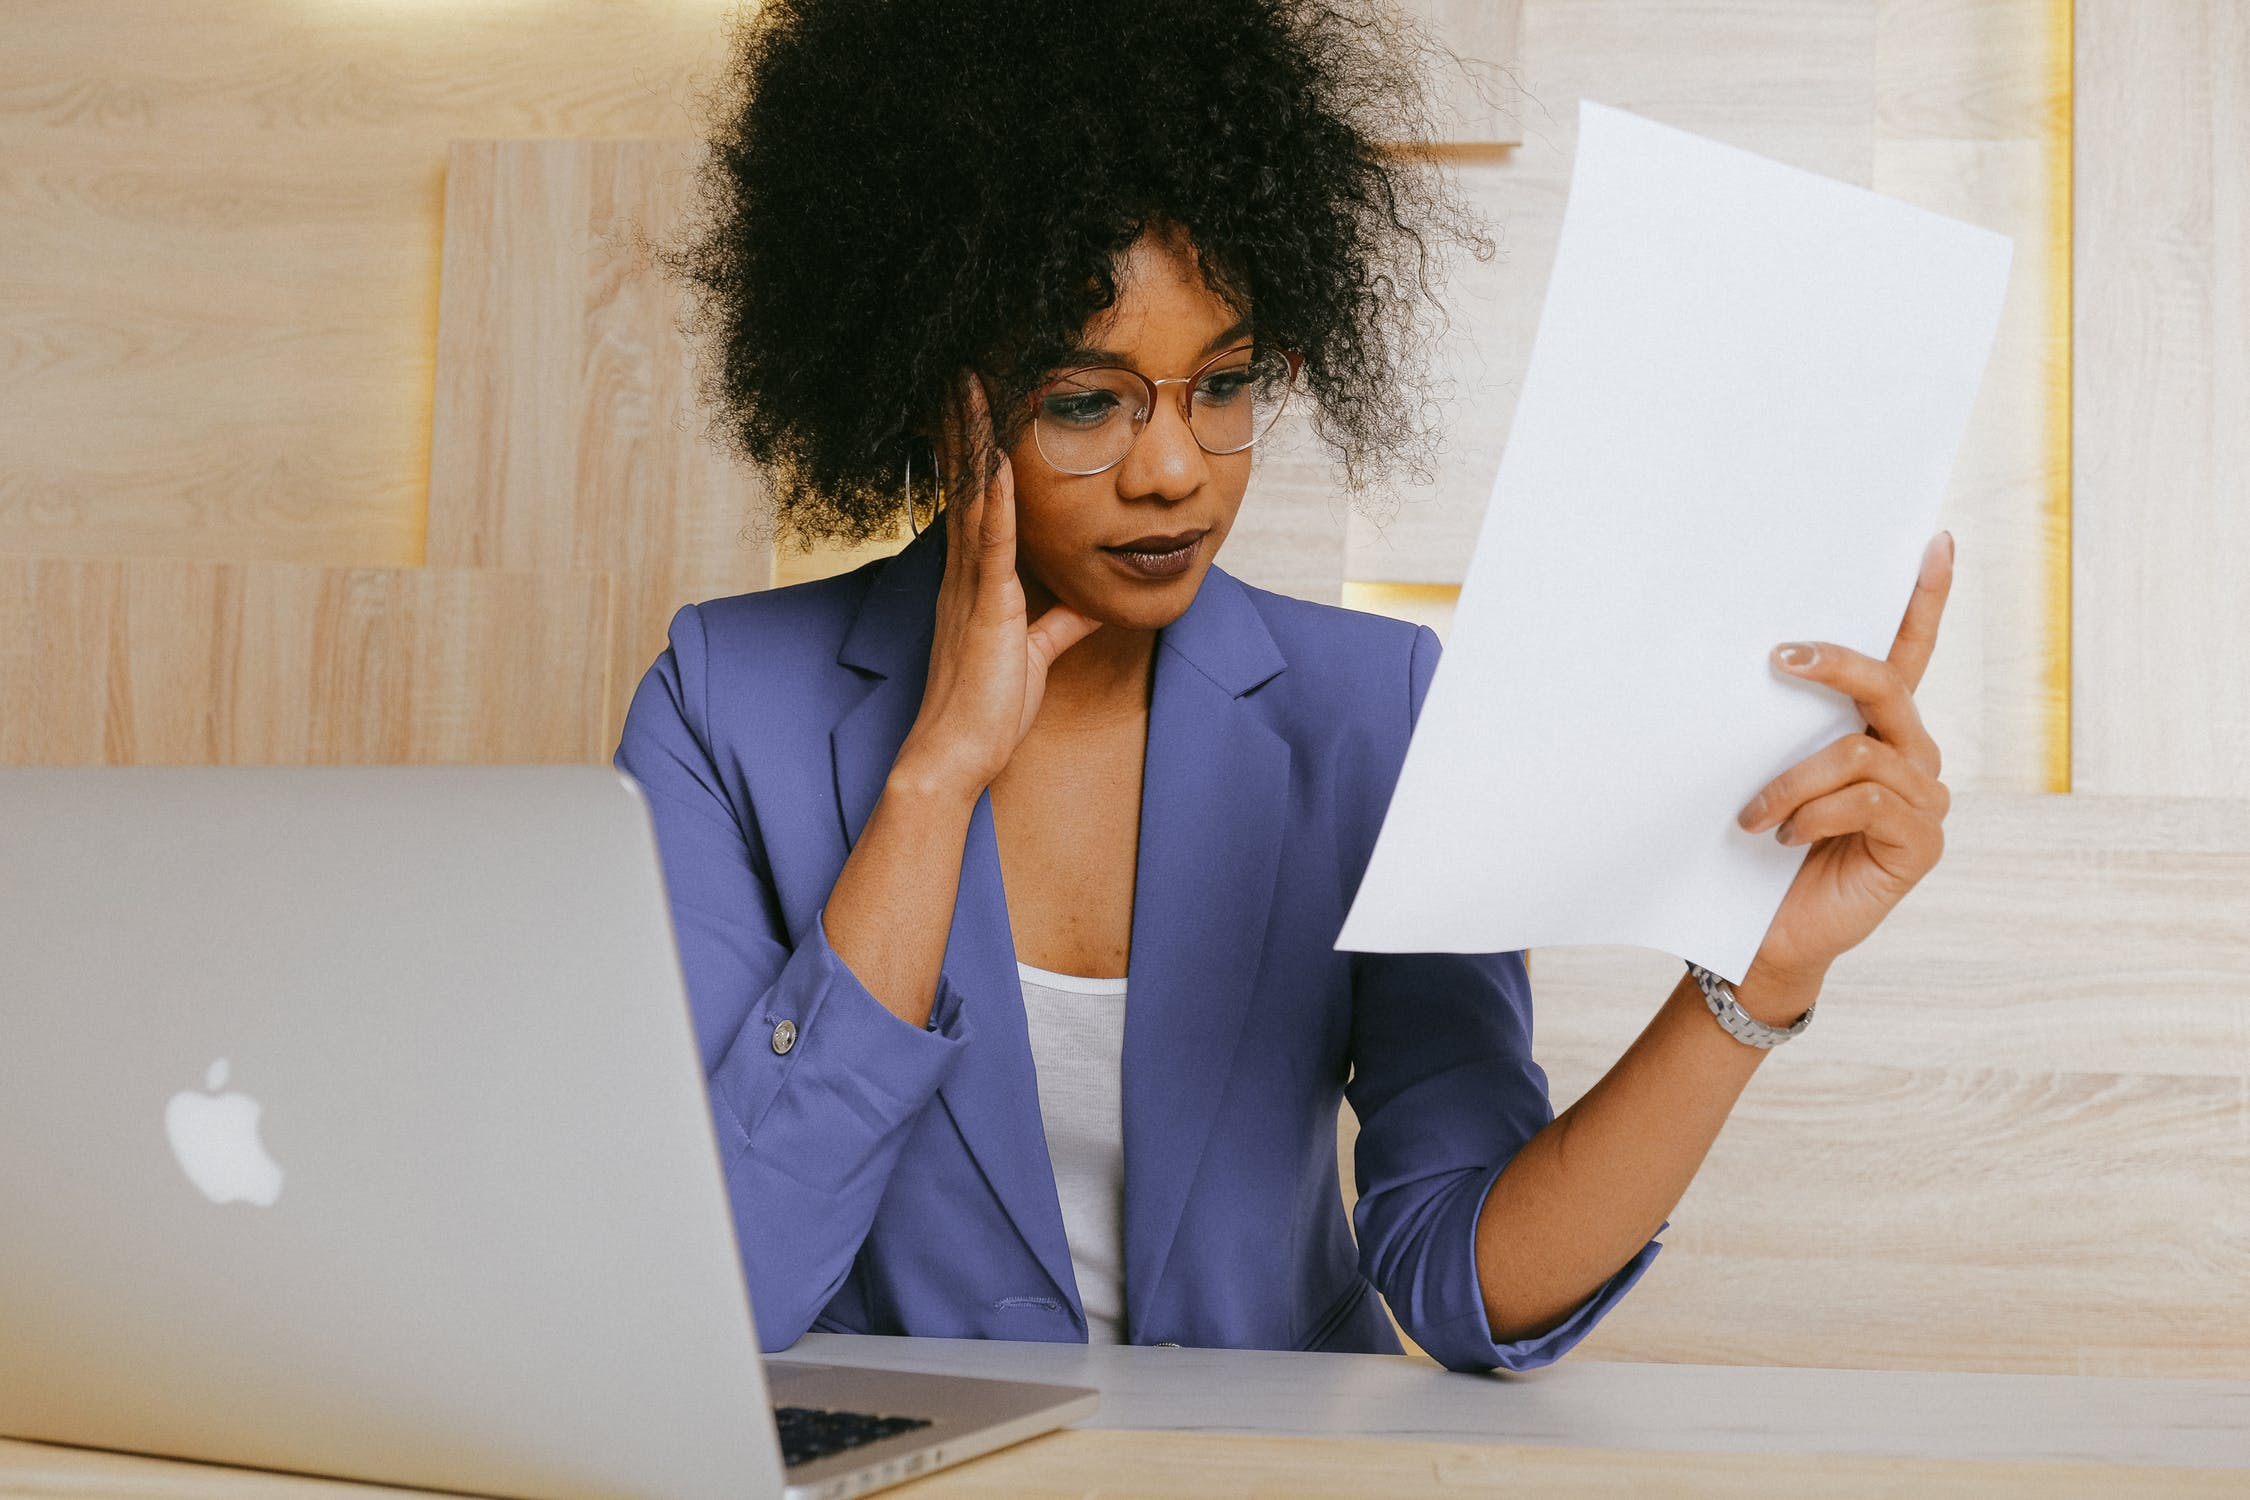 The Great Resignation: What it is and how to handle it